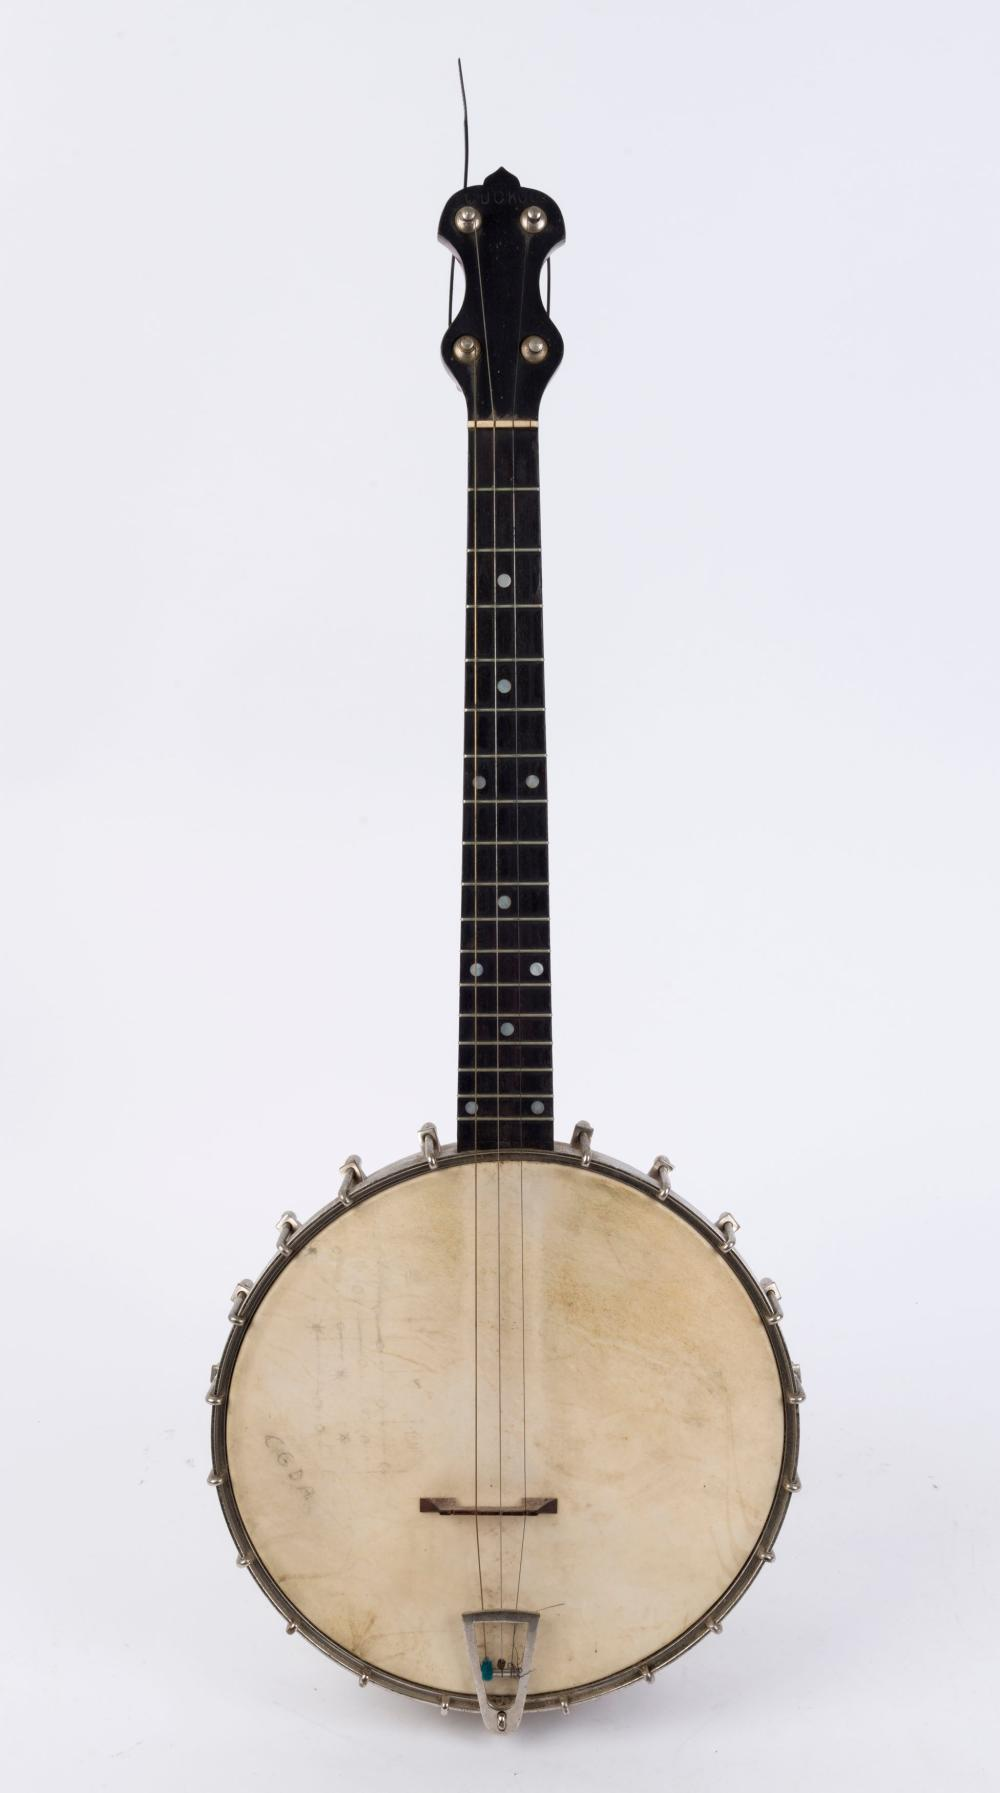 CUCKOO vintage English four string banjo, late 19th early 20th century, 27cm drumhead, 75cm long